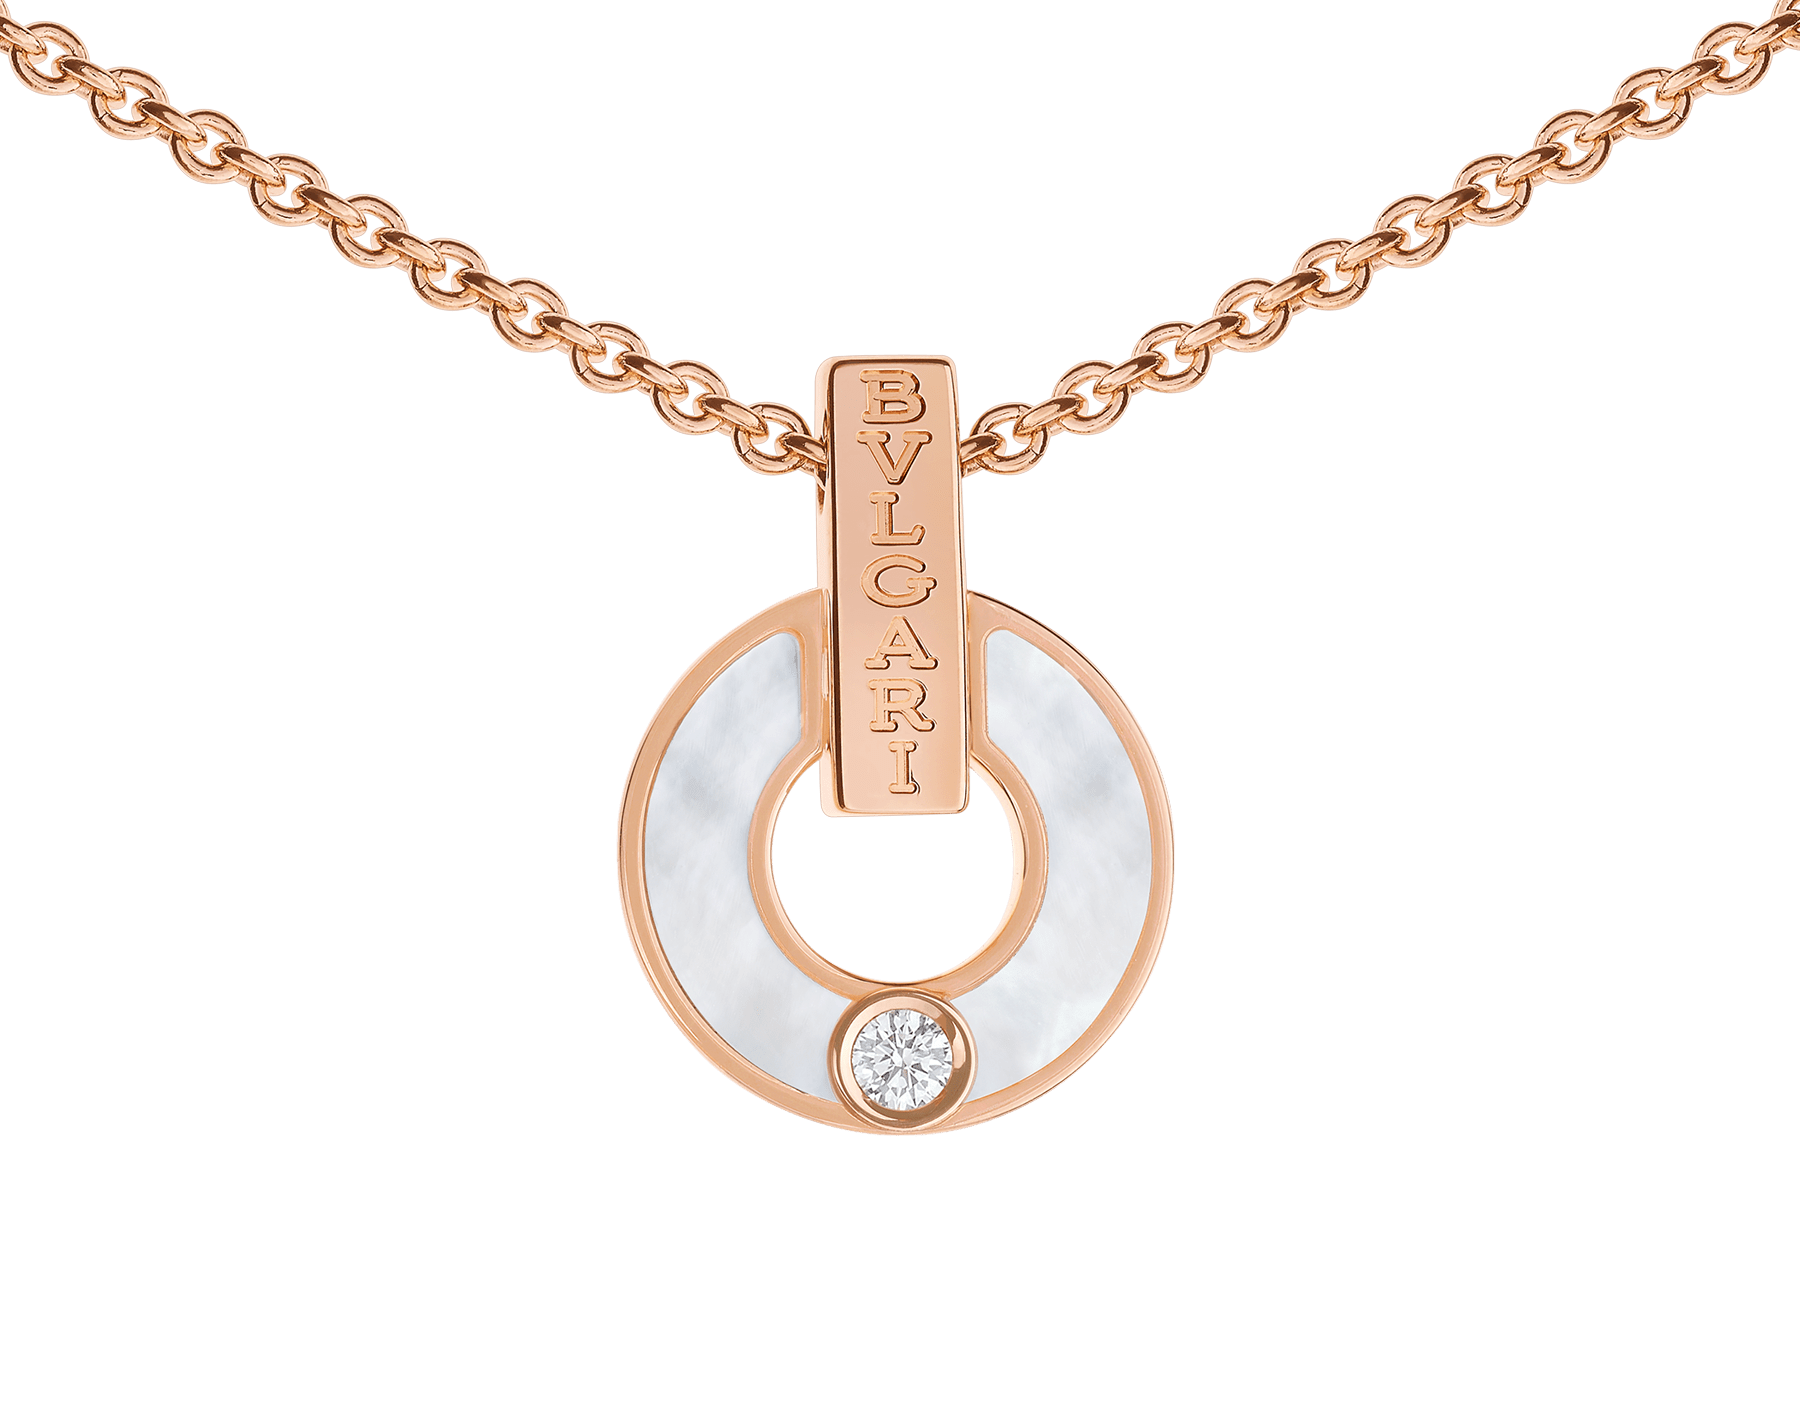 BVLGARI BVLGARI Openwork 18 kt rose gold necklace set with mother-of-pearl elements and a round brilliant-cut diamond 357546 image 3